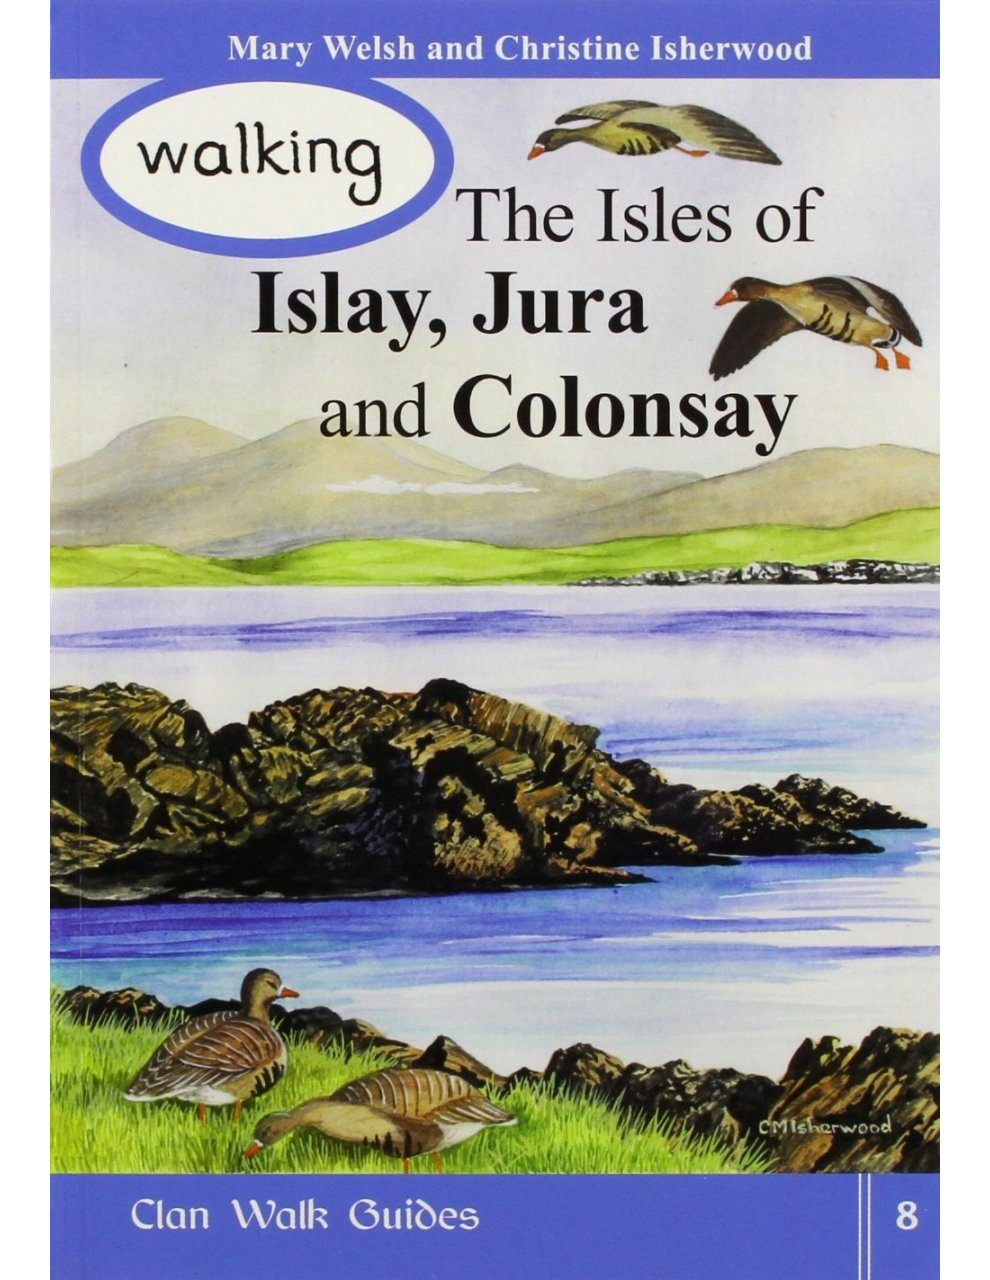 Walking the Isles of Islay, Jura and Colonsay